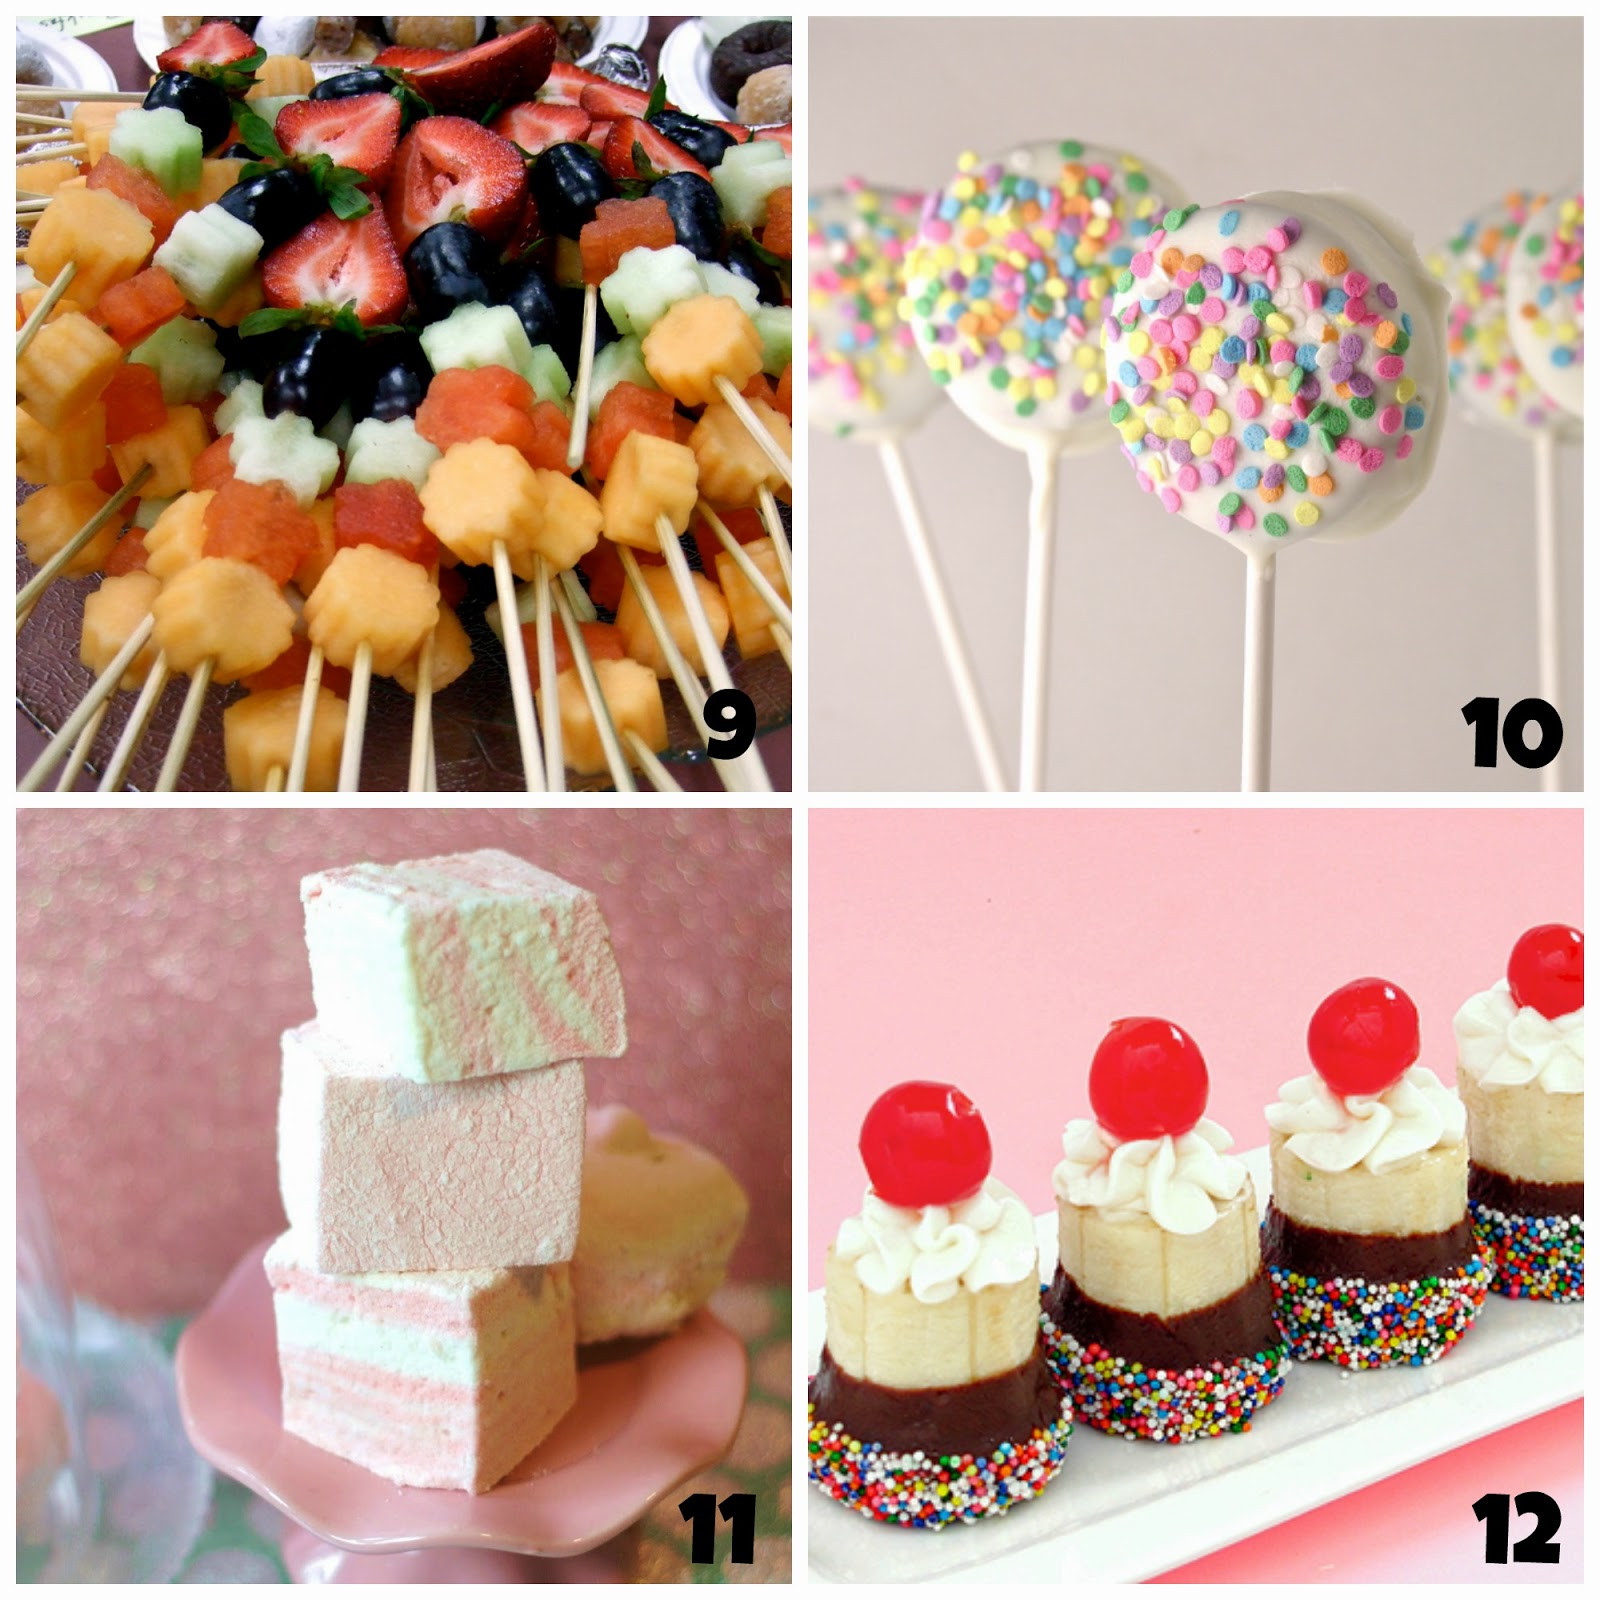 Party Food Ideas For Kids  12 Awesome Party Food Ideas – kidspartiesblog